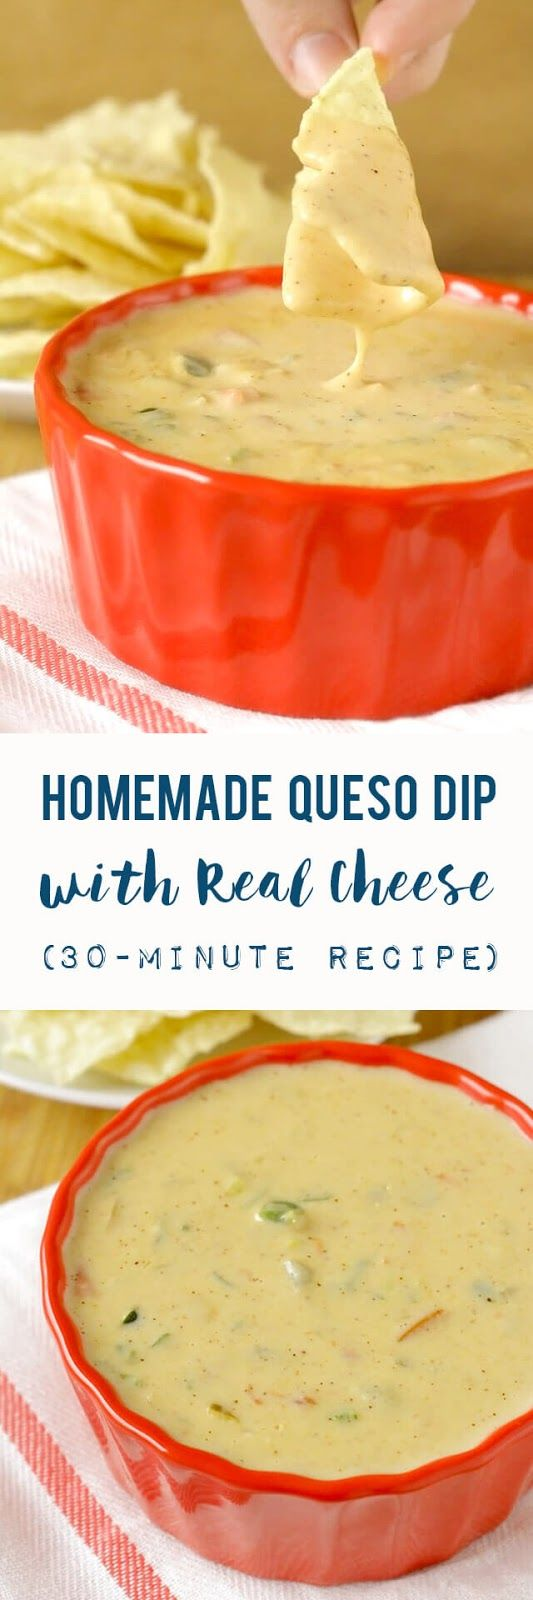 An easy homemade queso dip recipe made with three types of real cheese, onion, garlic, peppers, and spices in 30 minutes or less. Perfect for game day parties, holiday gatherings, or a relaxing night